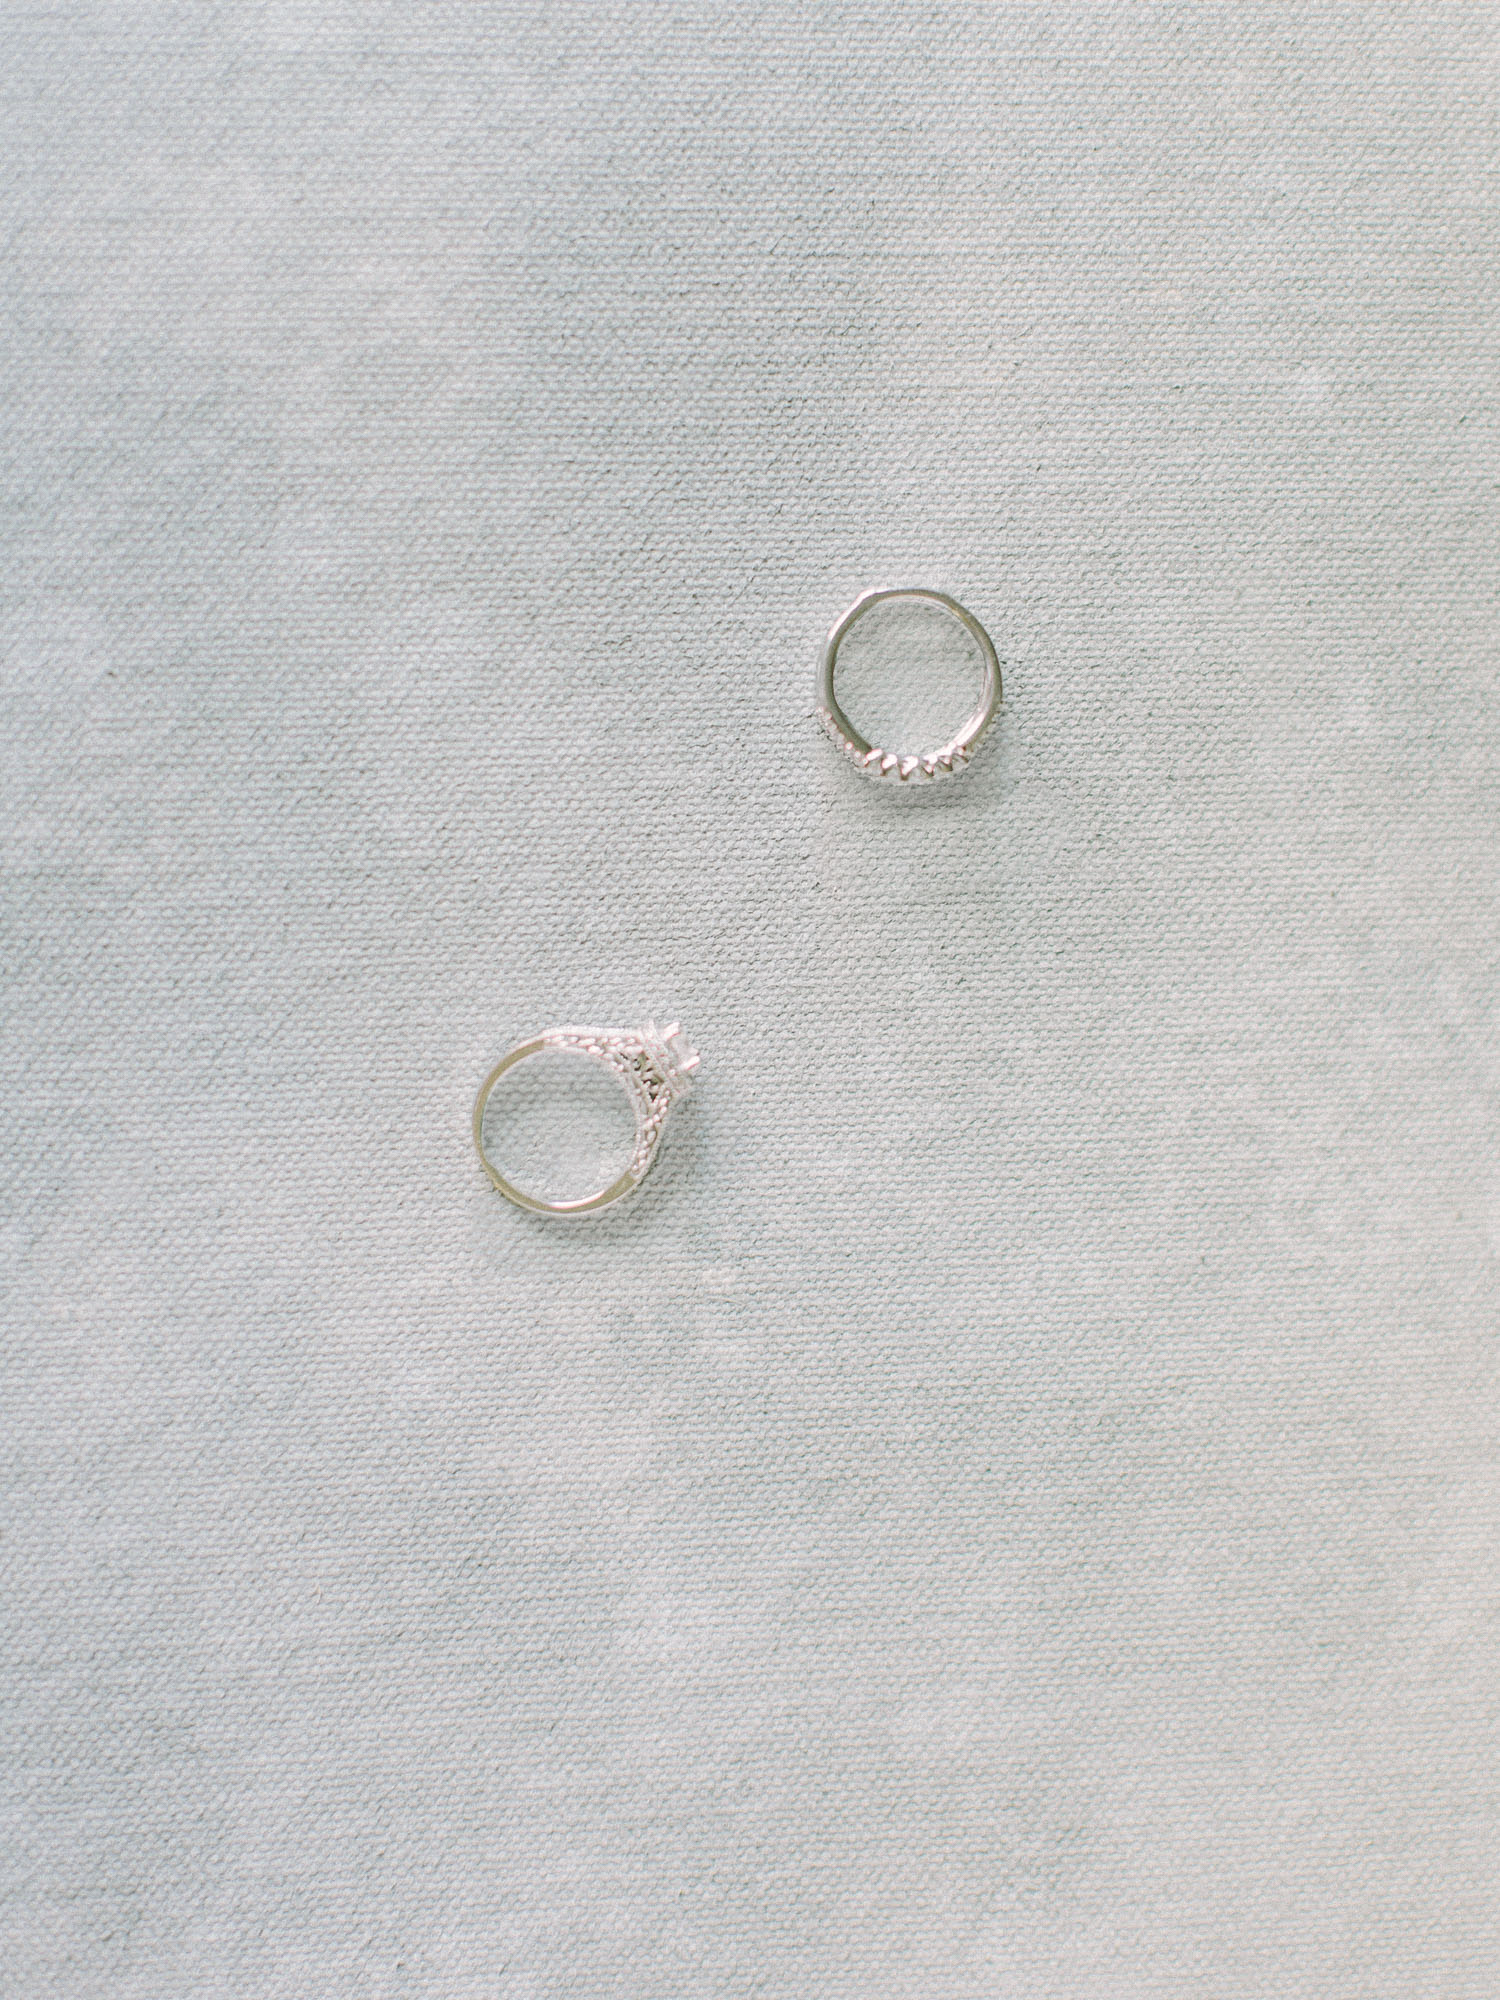 White gold and diamond wedding rings rest on a painterly background by fine art wedding photographer Christina Harrison